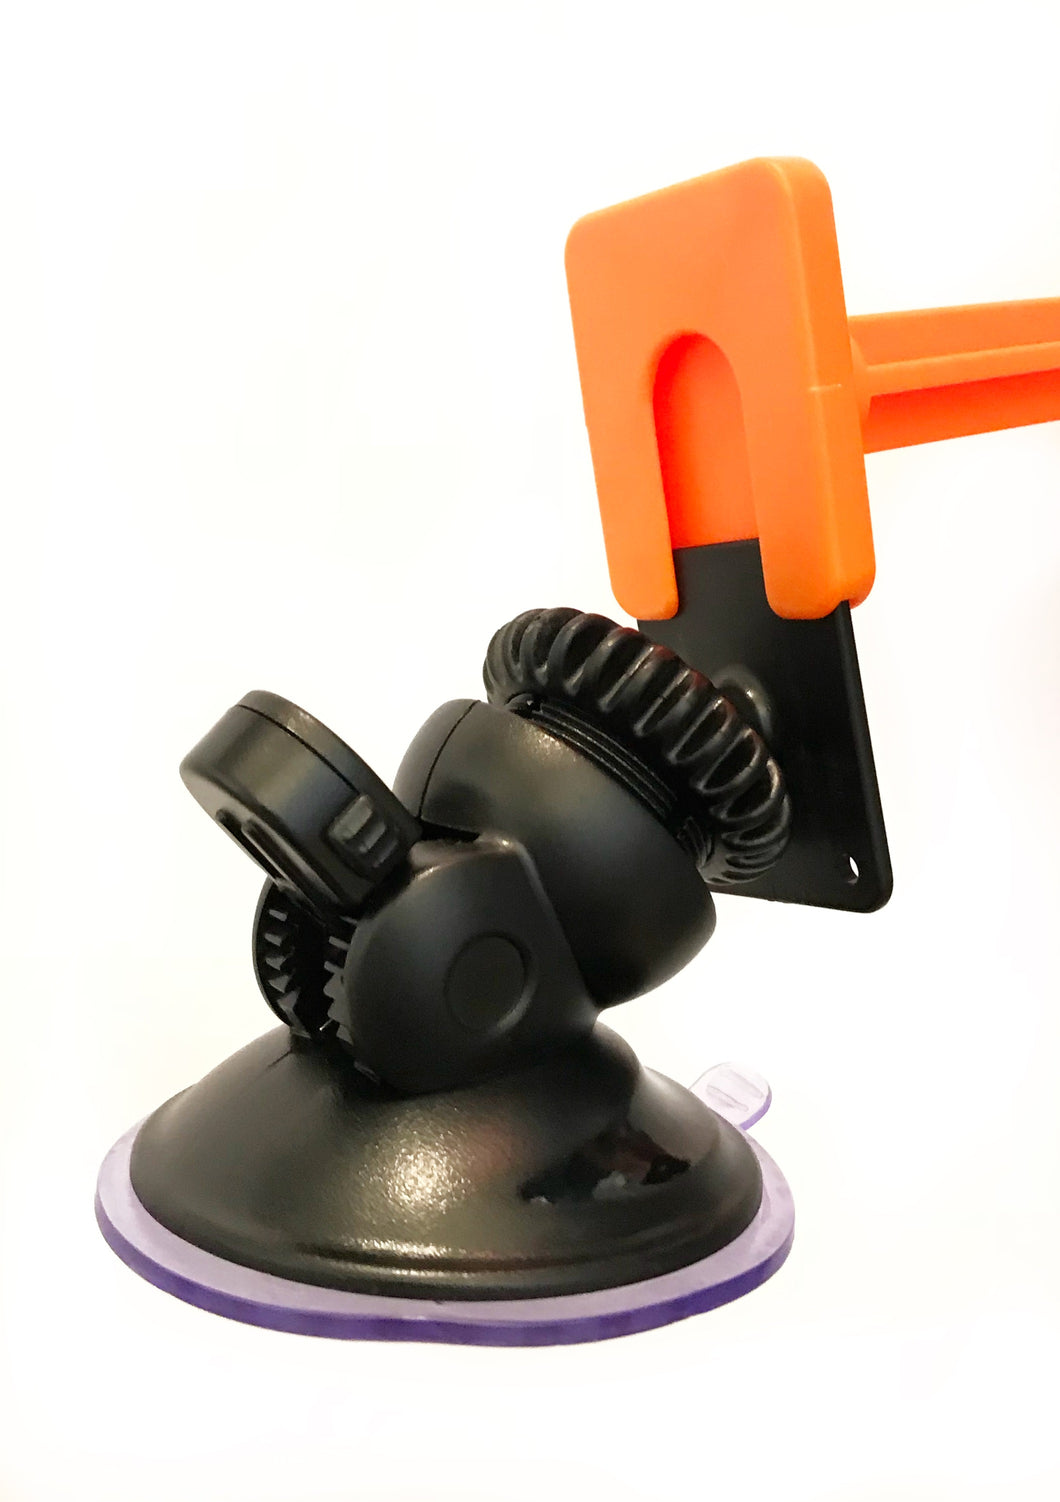 Replacement Suction Mount